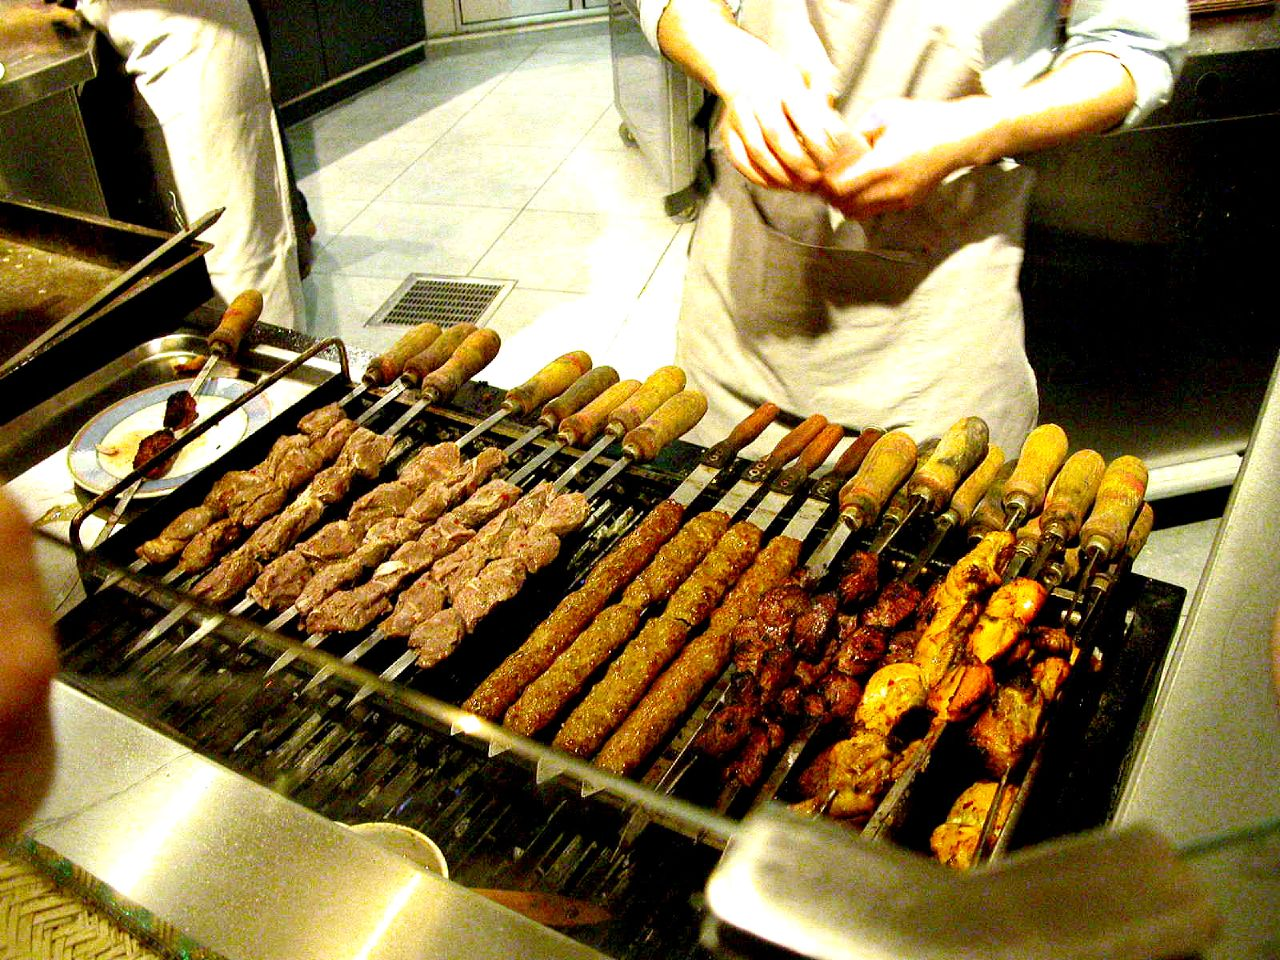 Kebabs are an important part of Awadhi cuisine